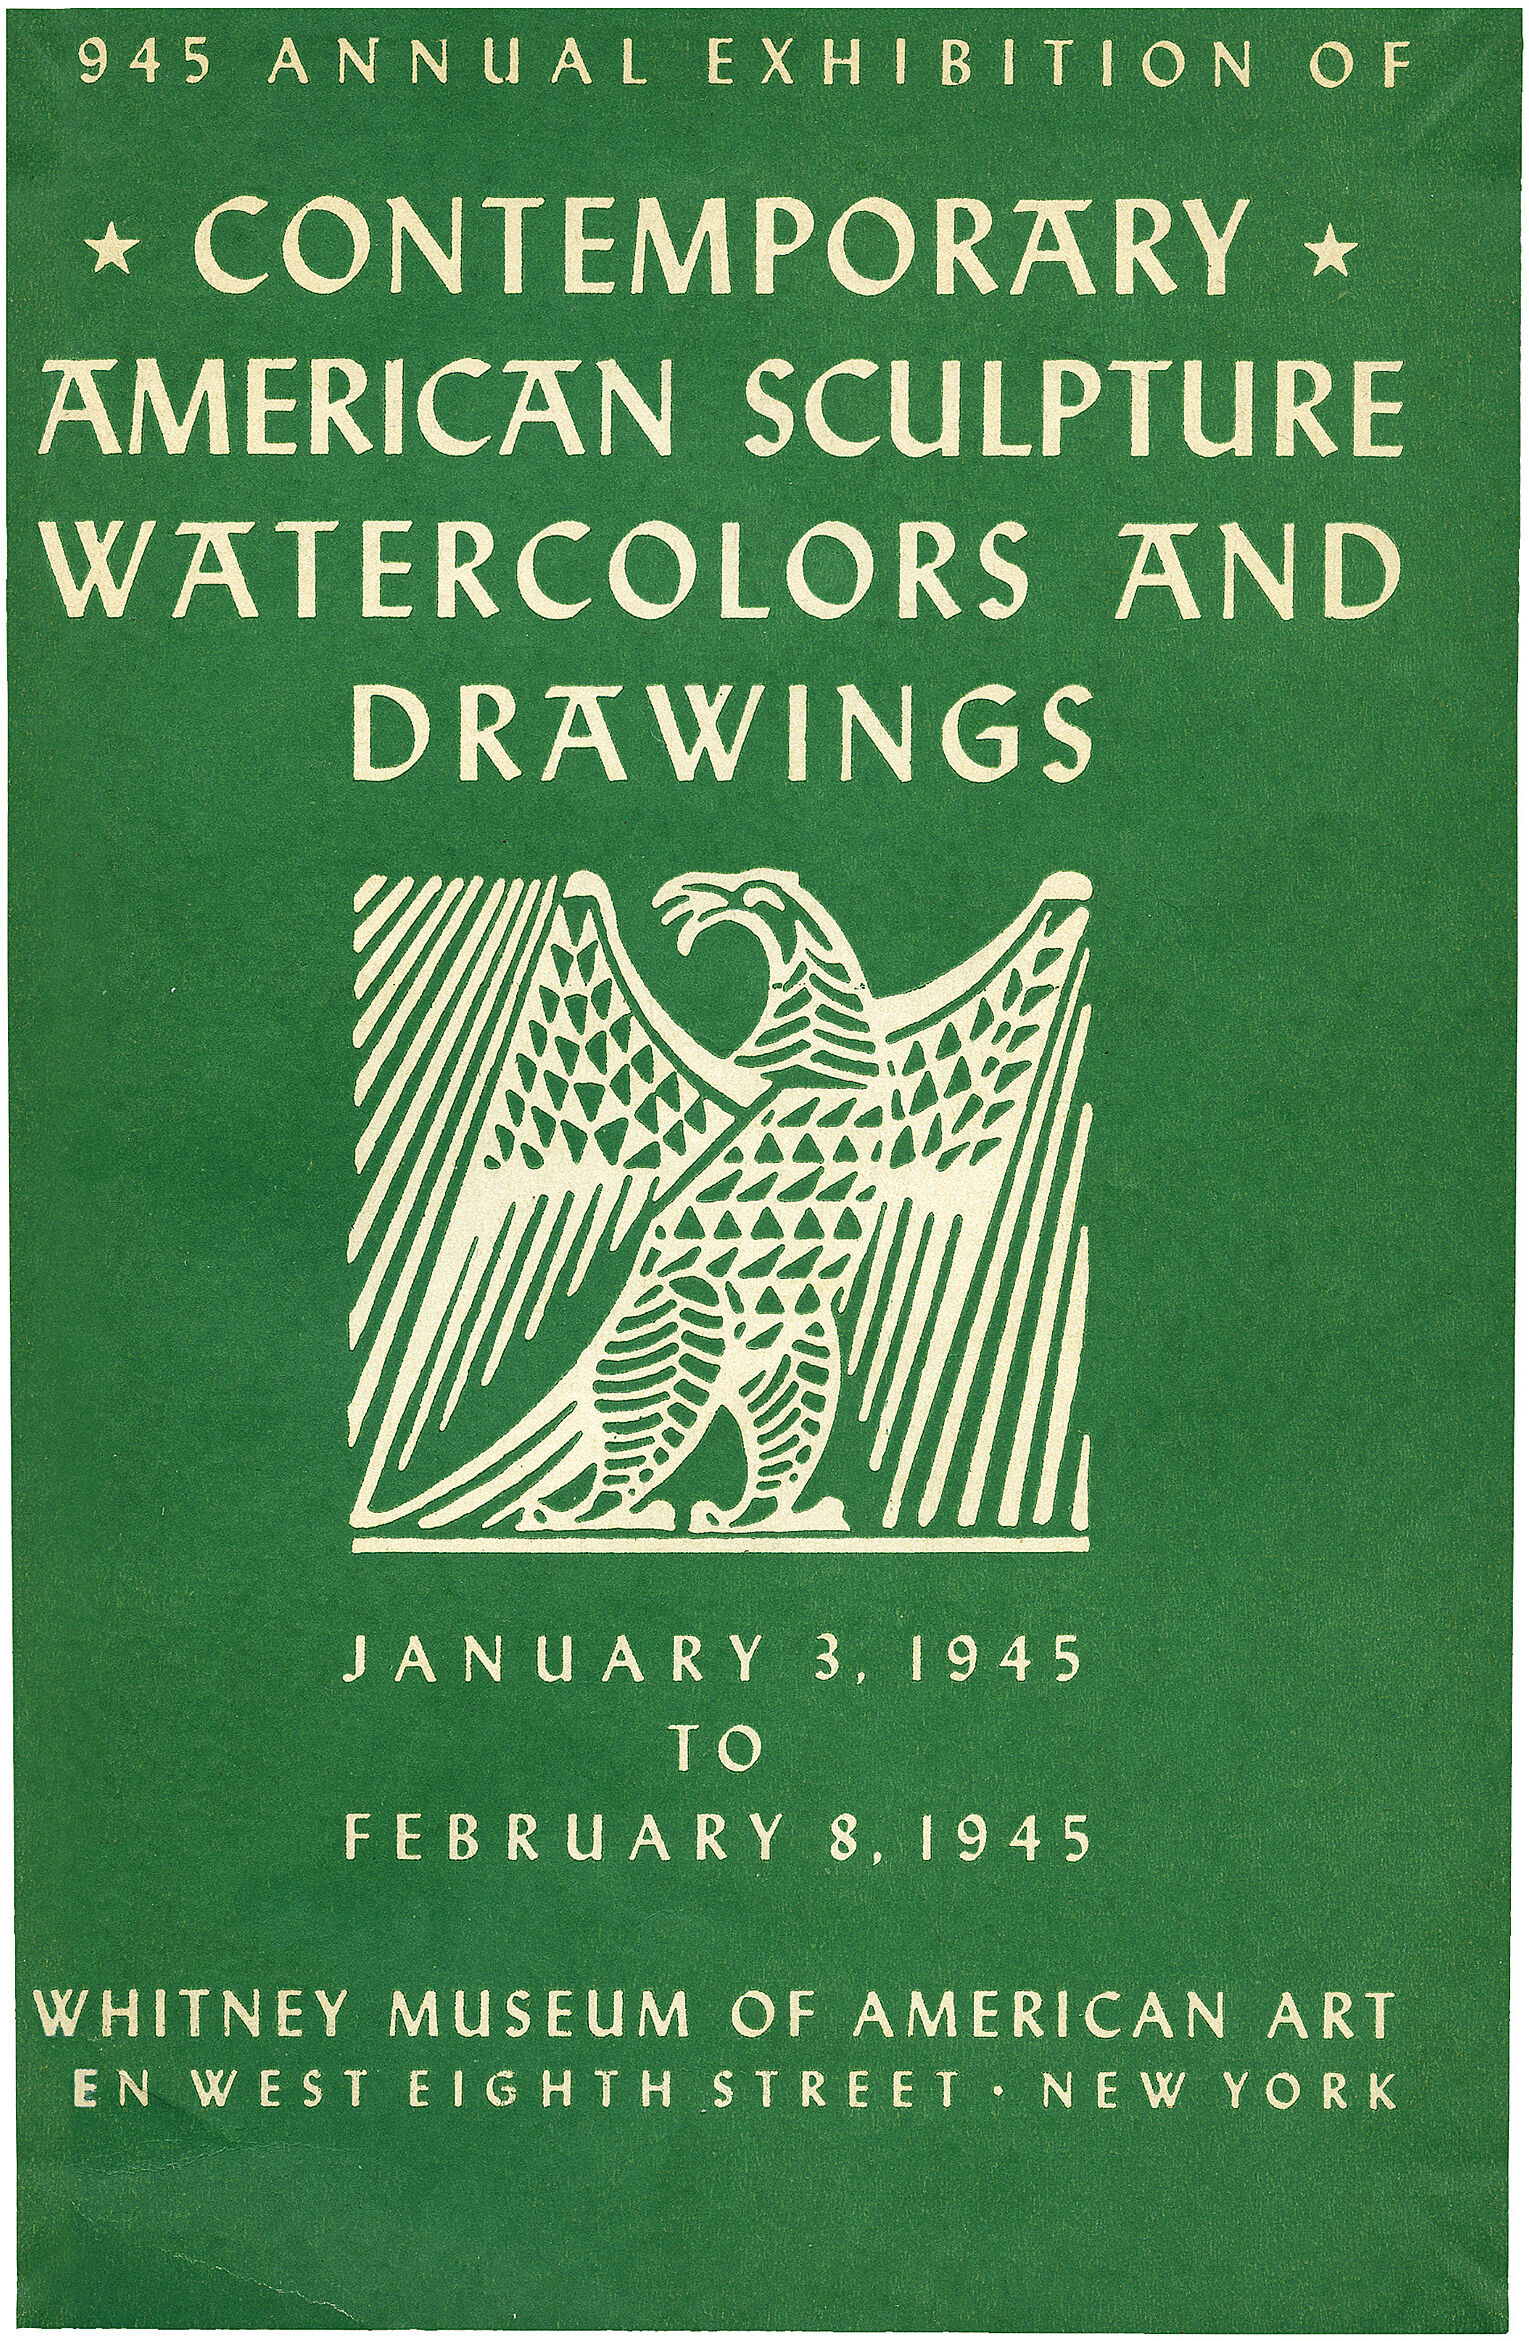 Cover for 1945 Annual Exhibition of Contemporary American Sculpture, Watercolors and Drawings catalogue